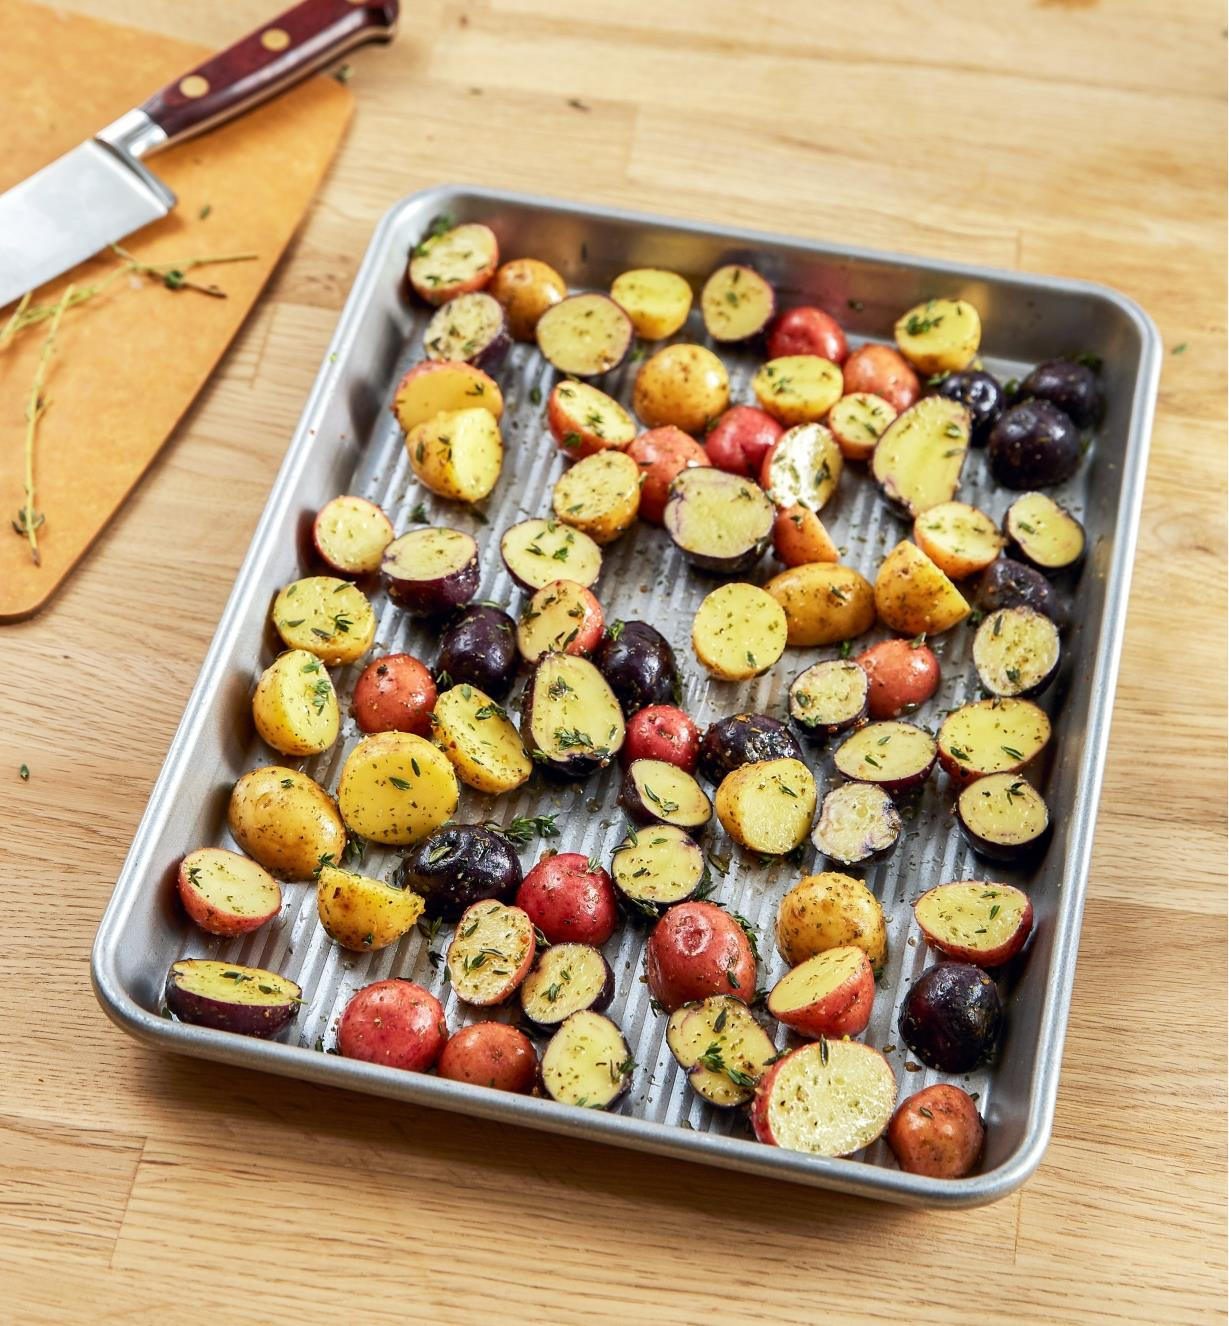 Quarter sheet baking pan containing small potatoes